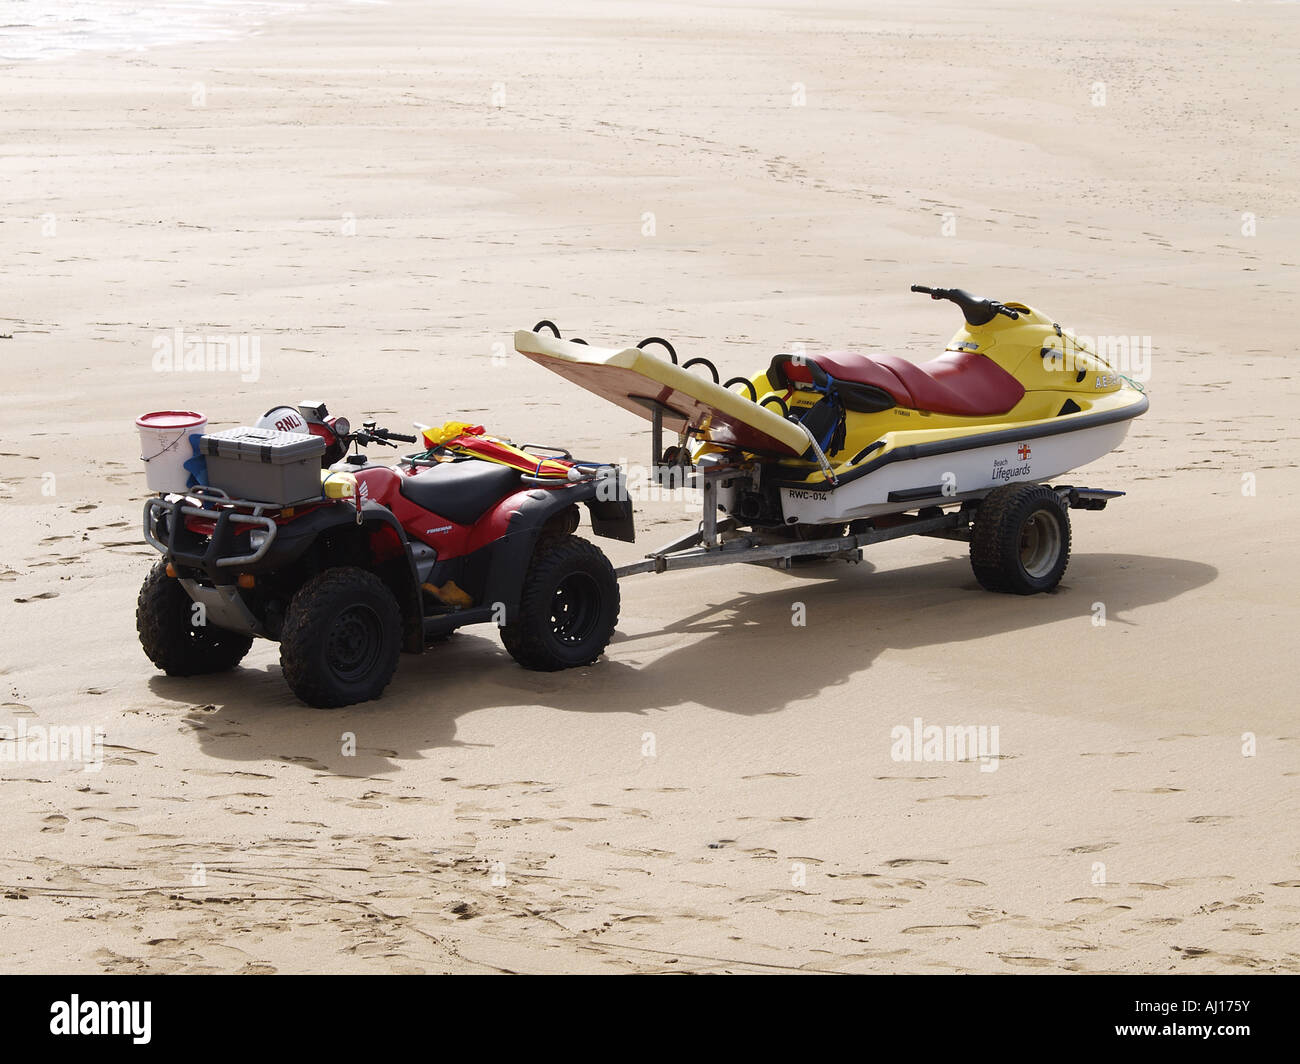 lifeguards jet ski on trailer attached to a quad bike stock photo royalty free image 14587958. Black Bedroom Furniture Sets. Home Design Ideas